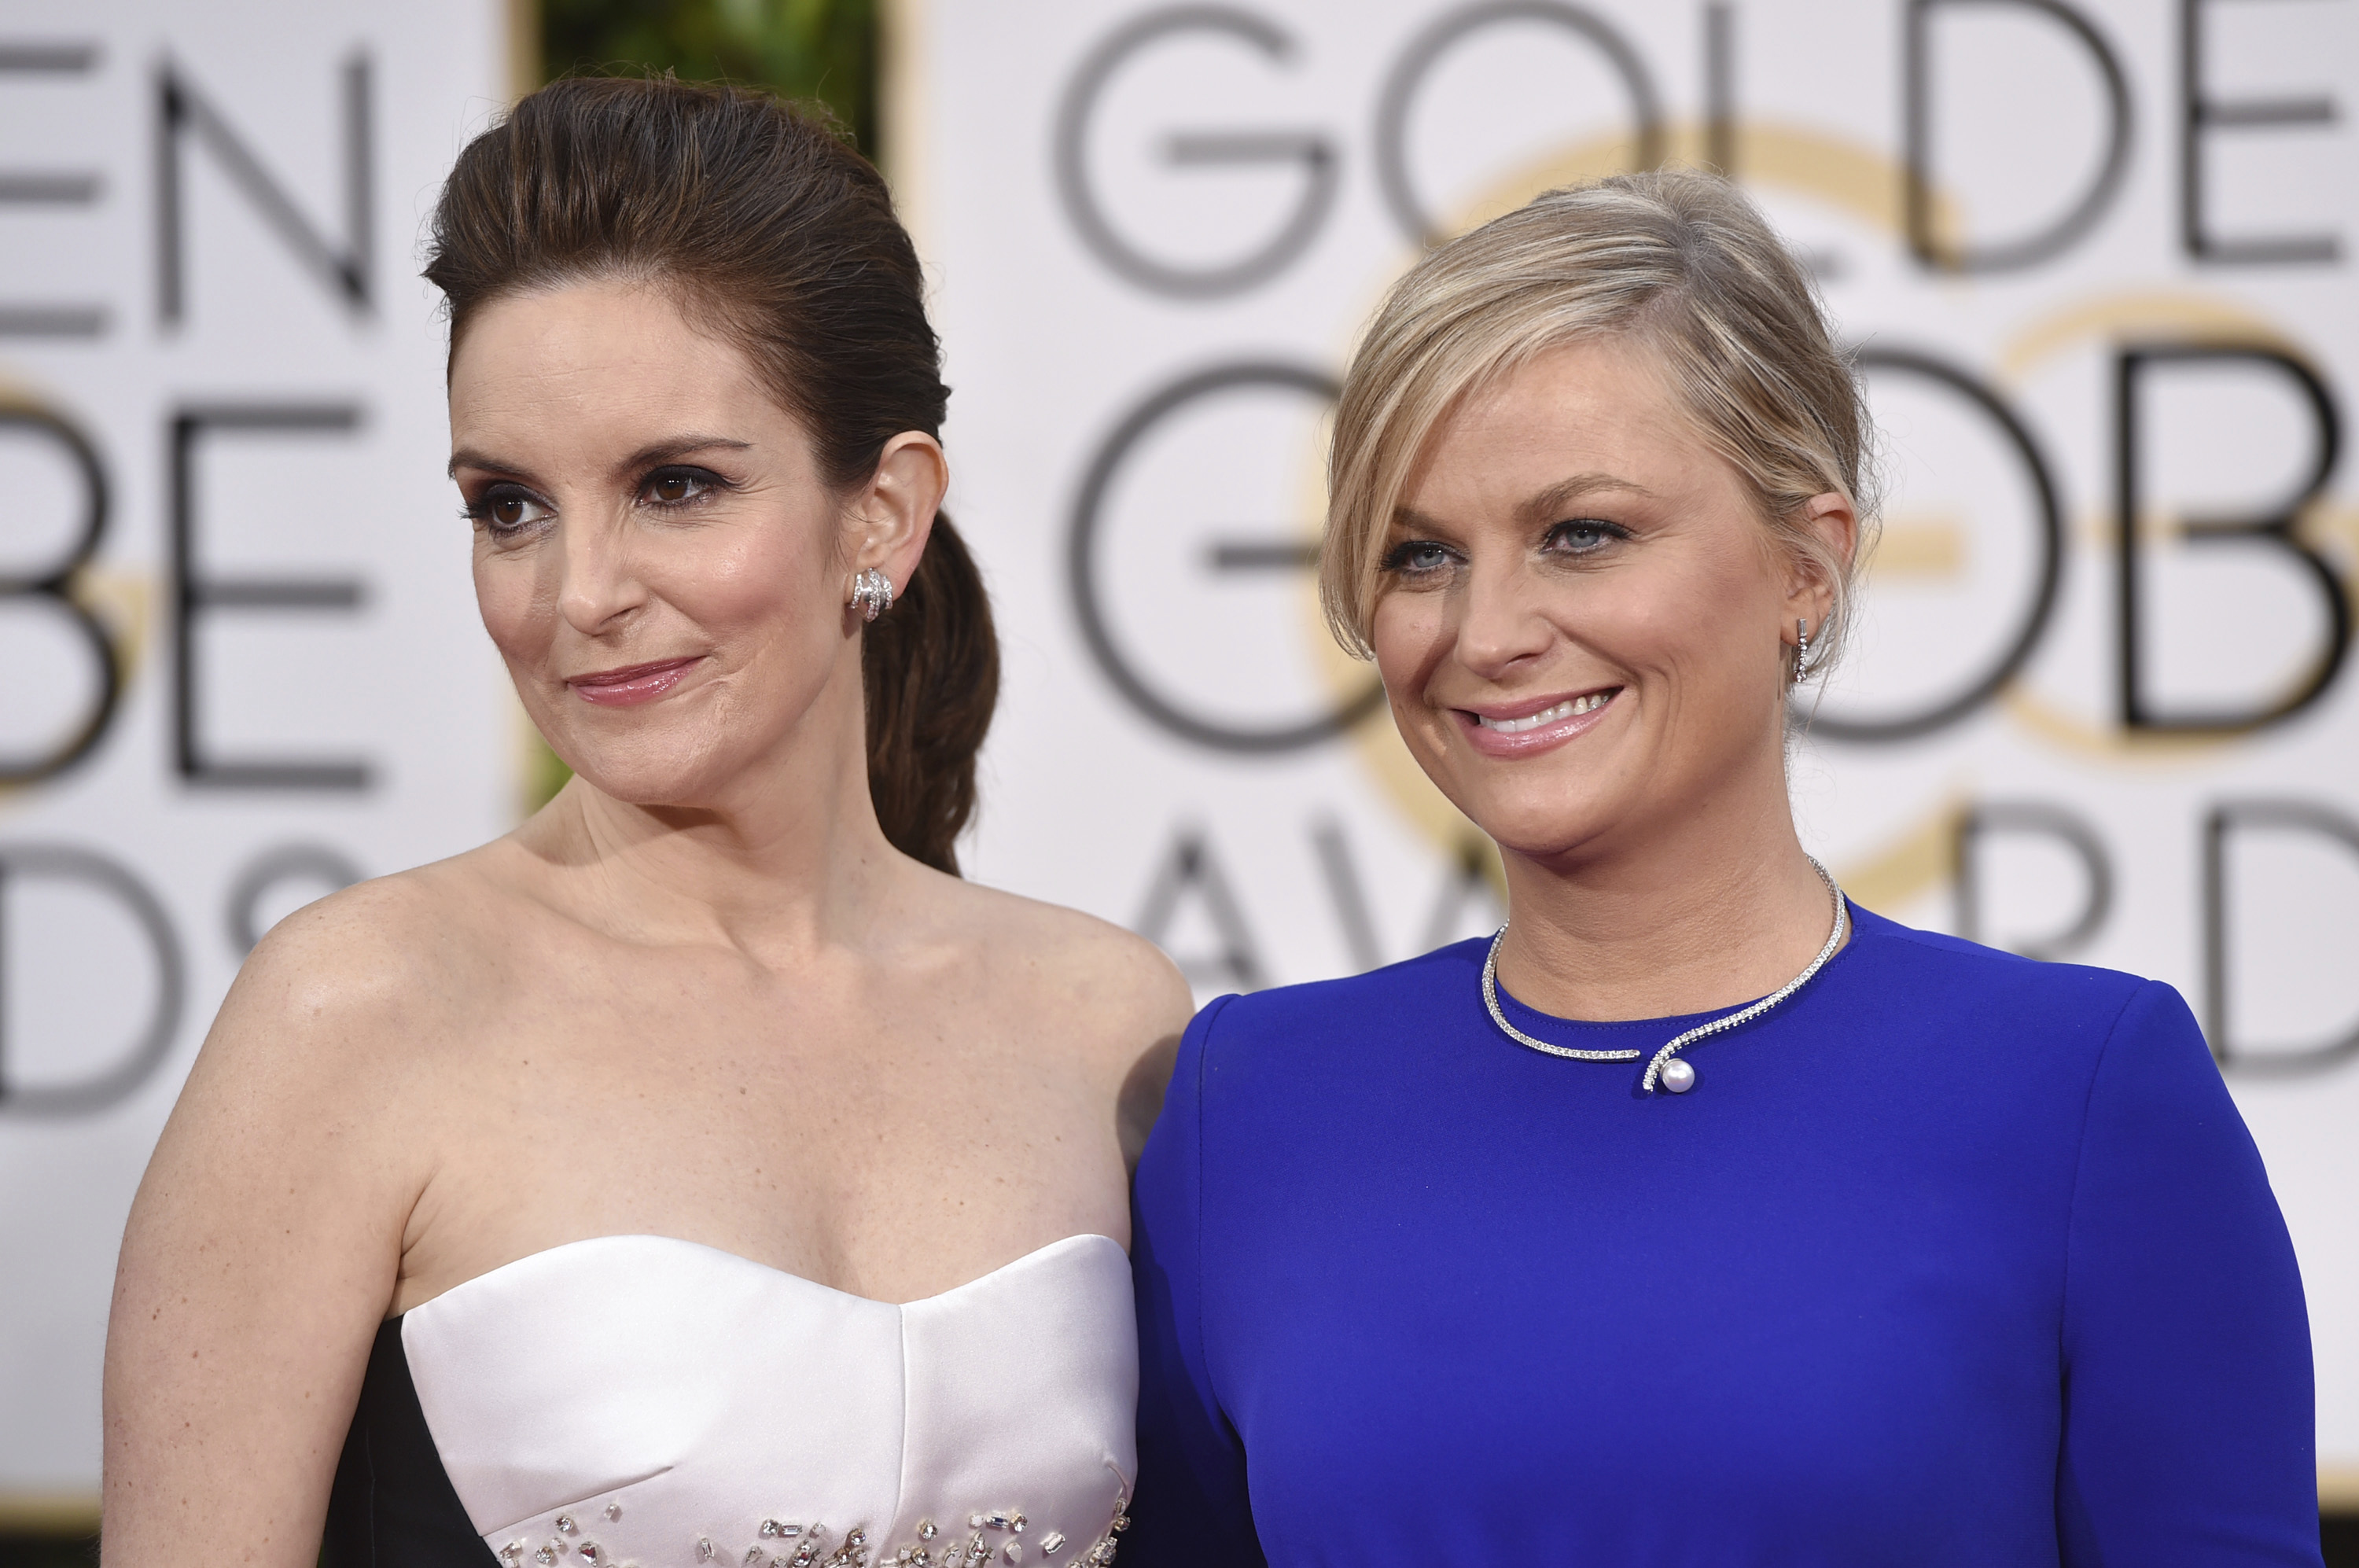 Tina Fey Amy Poehler to Co-Host Golden Globes in Bicoastal Broadcast – Rolling Stone